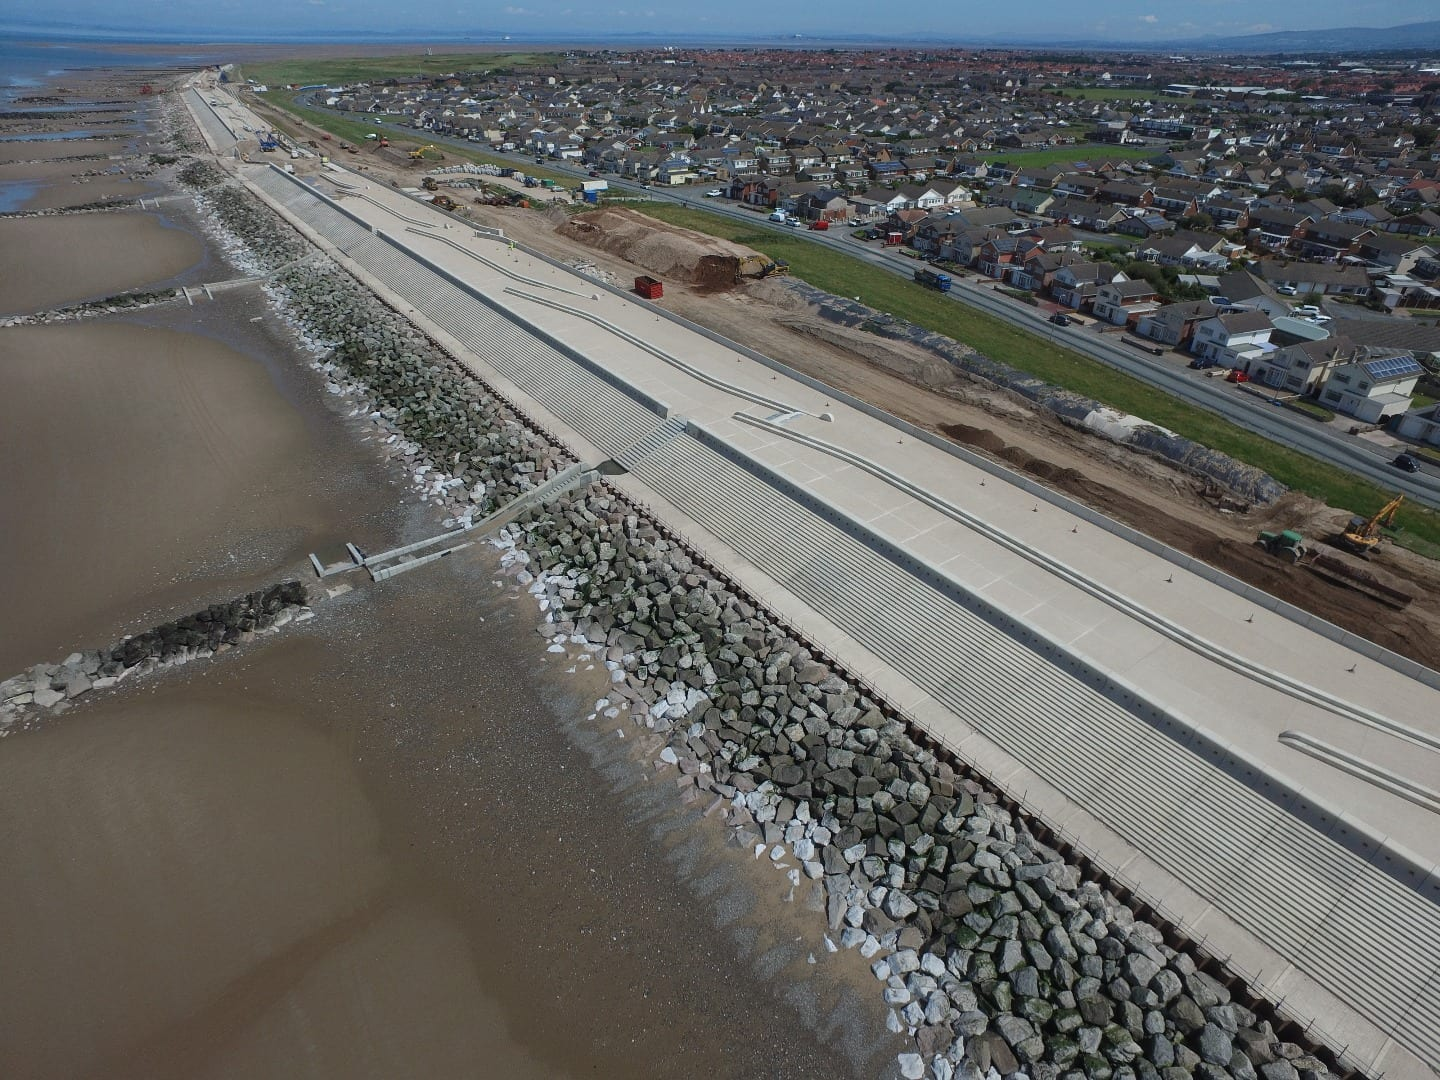 Aerial view of Rossall Sea Defences at Fleetwood, part of the Fylde Coast seafront